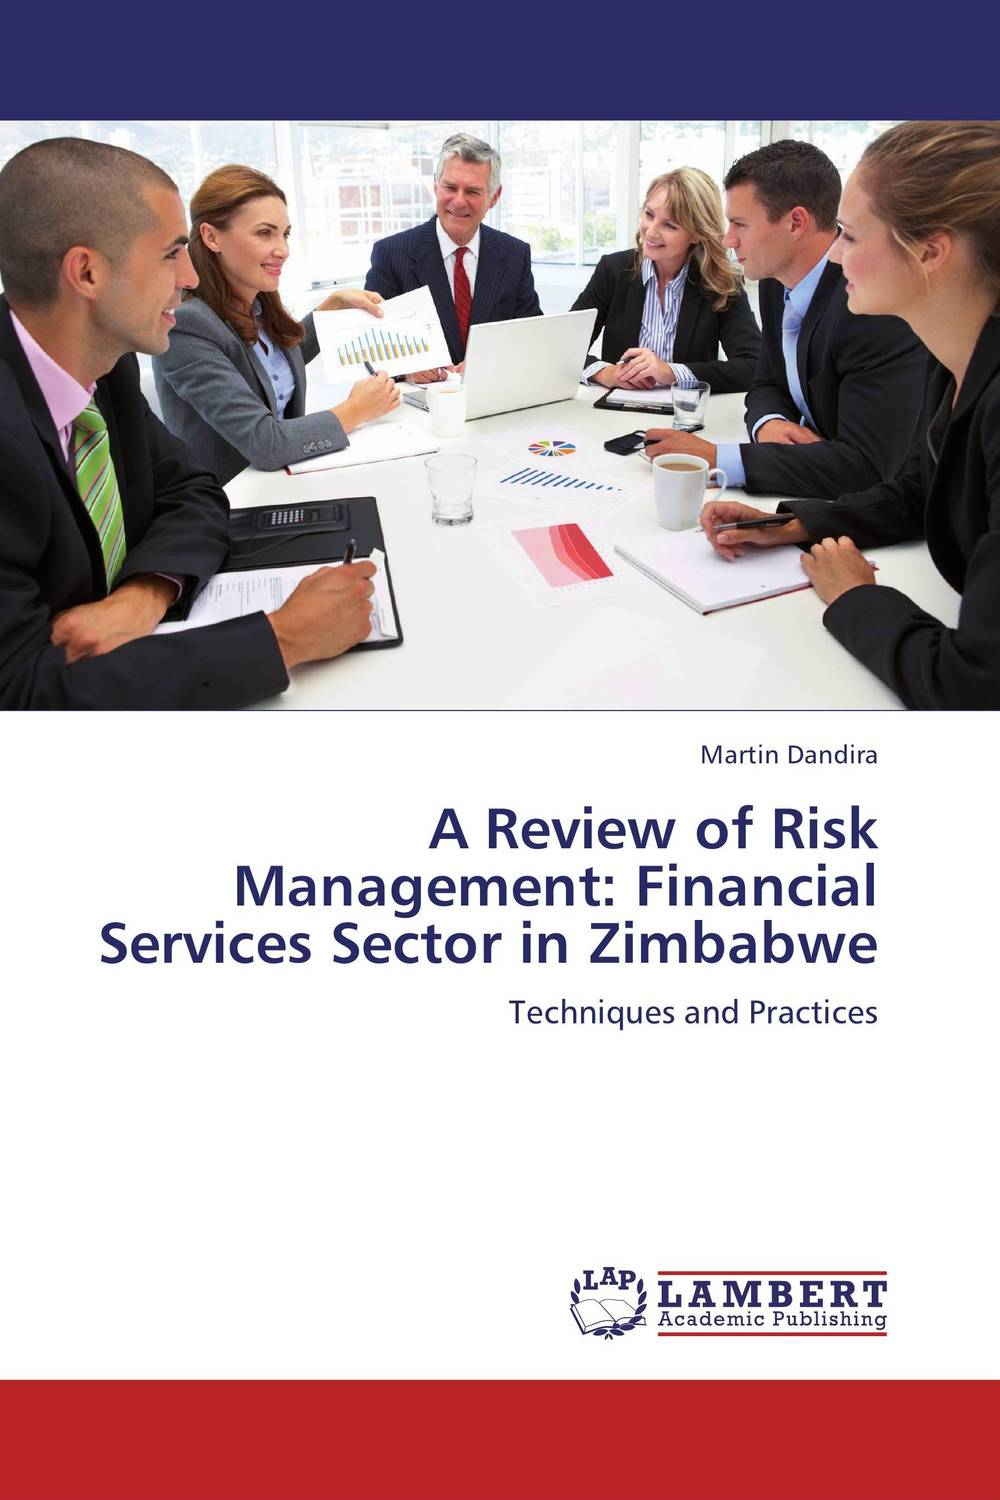 A Review of Risk Management: Financial Services Sector in Zimbabwe sim segal corporate value of enterprise risk management the next step in business management